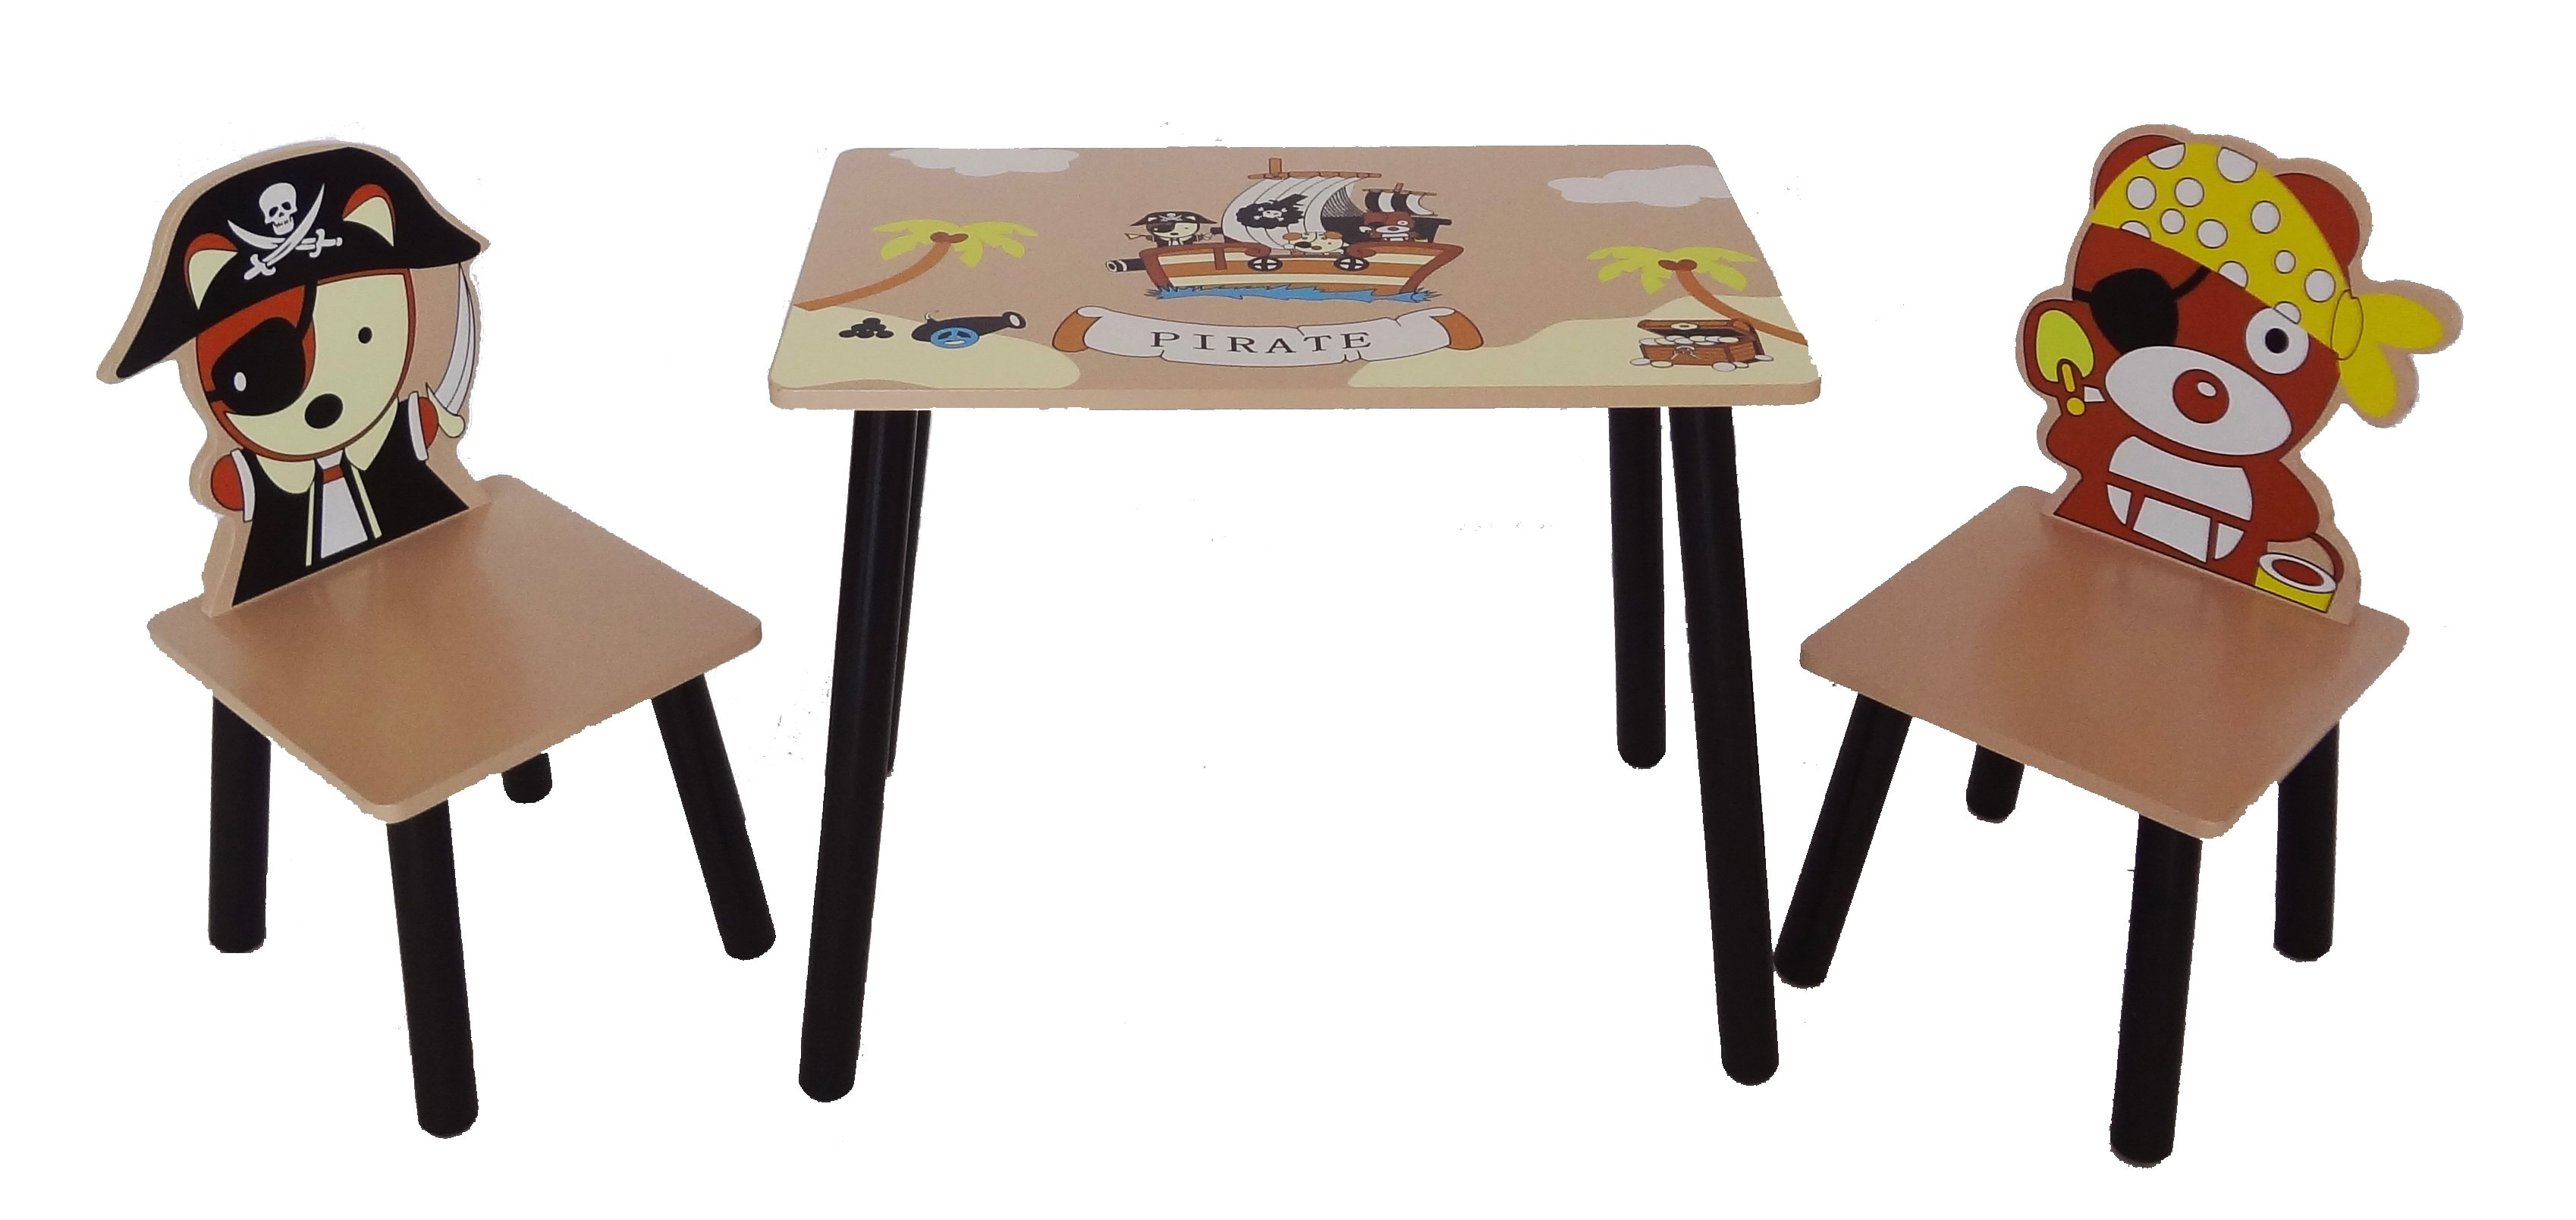 Kiddi Style Pirate Table u0026 Chair Set - Kiddy Products. Kiddi Style Pirate Table Chair Set Kiddy Products  sc 1 st  Best Image Engine & Captivating Pirate Table And Chair Set Ideas - Best Image Engine ...